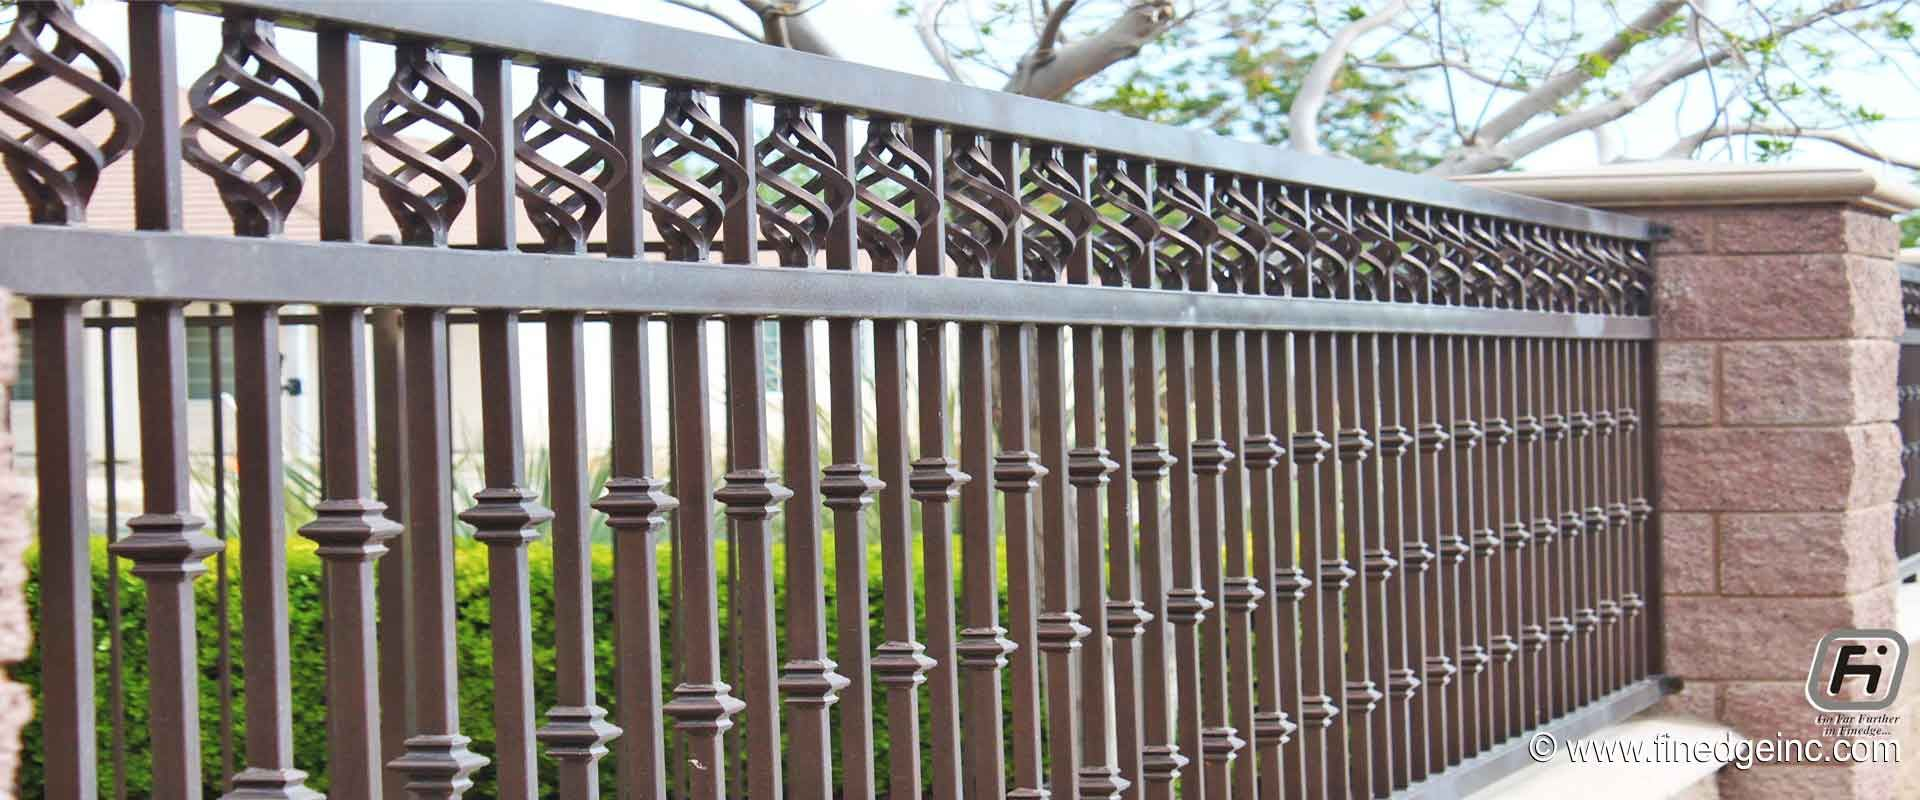 192 Reference Of Decorative Iron Fence Parts In 2020 Iron Fence Wrought Iron Fences Metal Fence